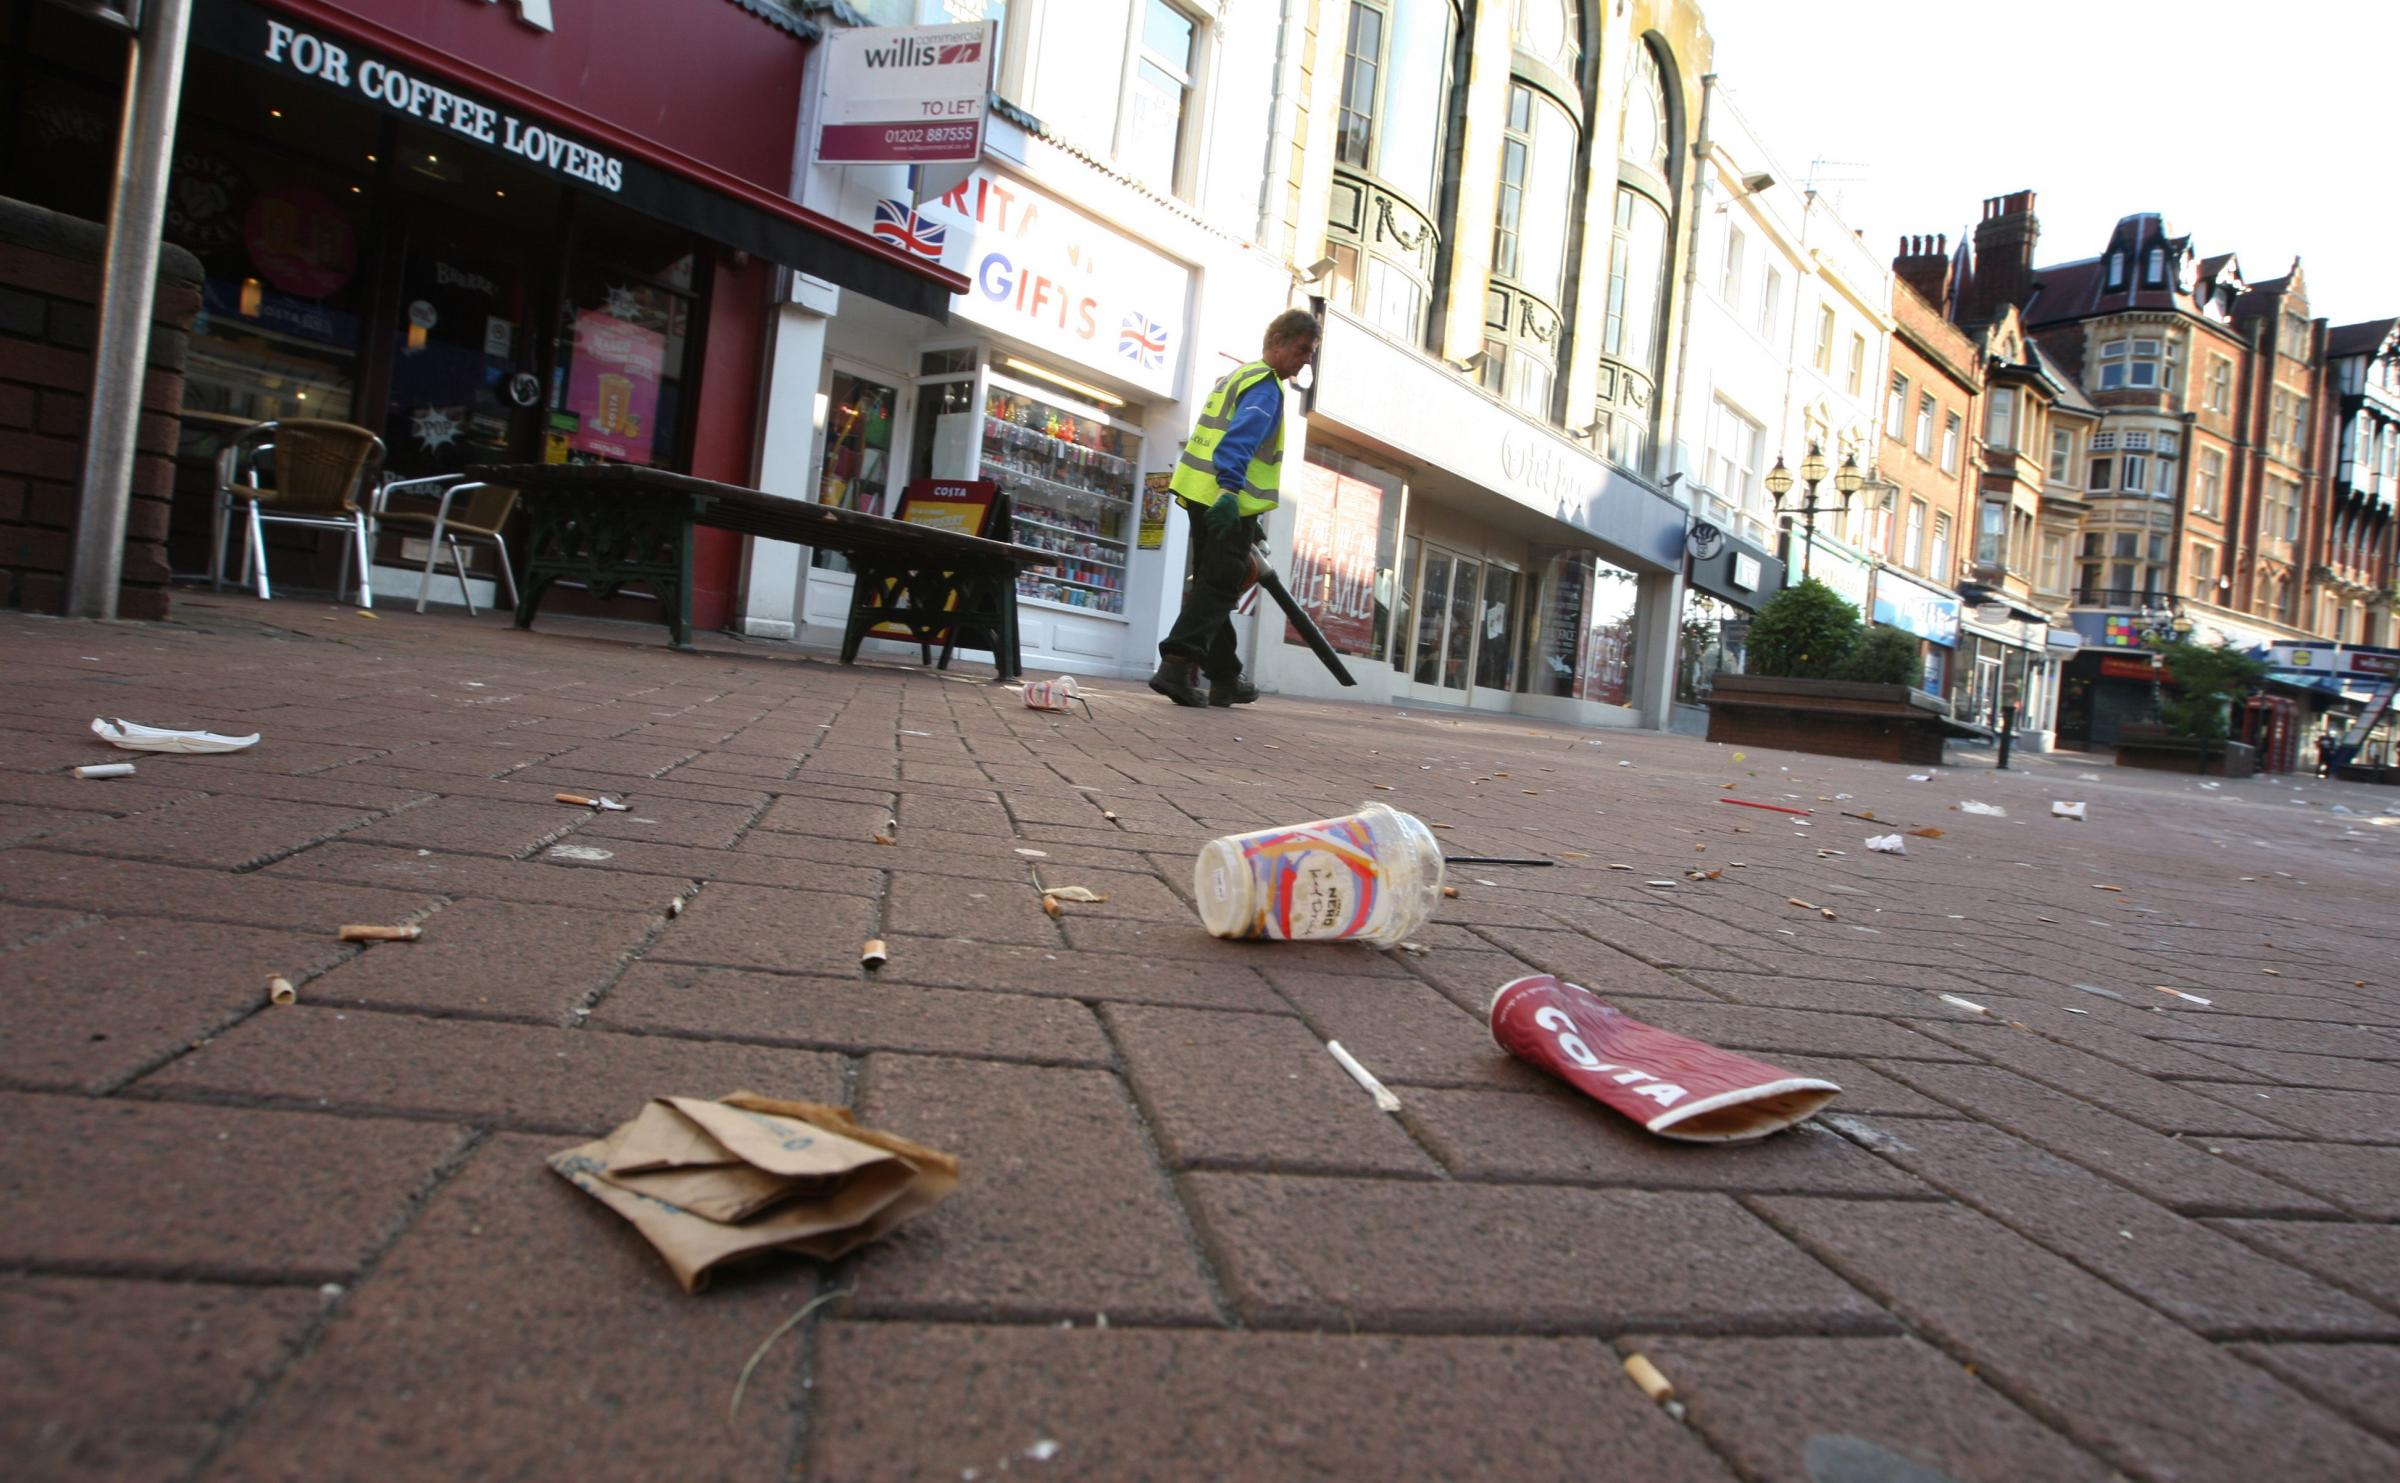 The long-term littering saga – do charity's efforts hold the answer?